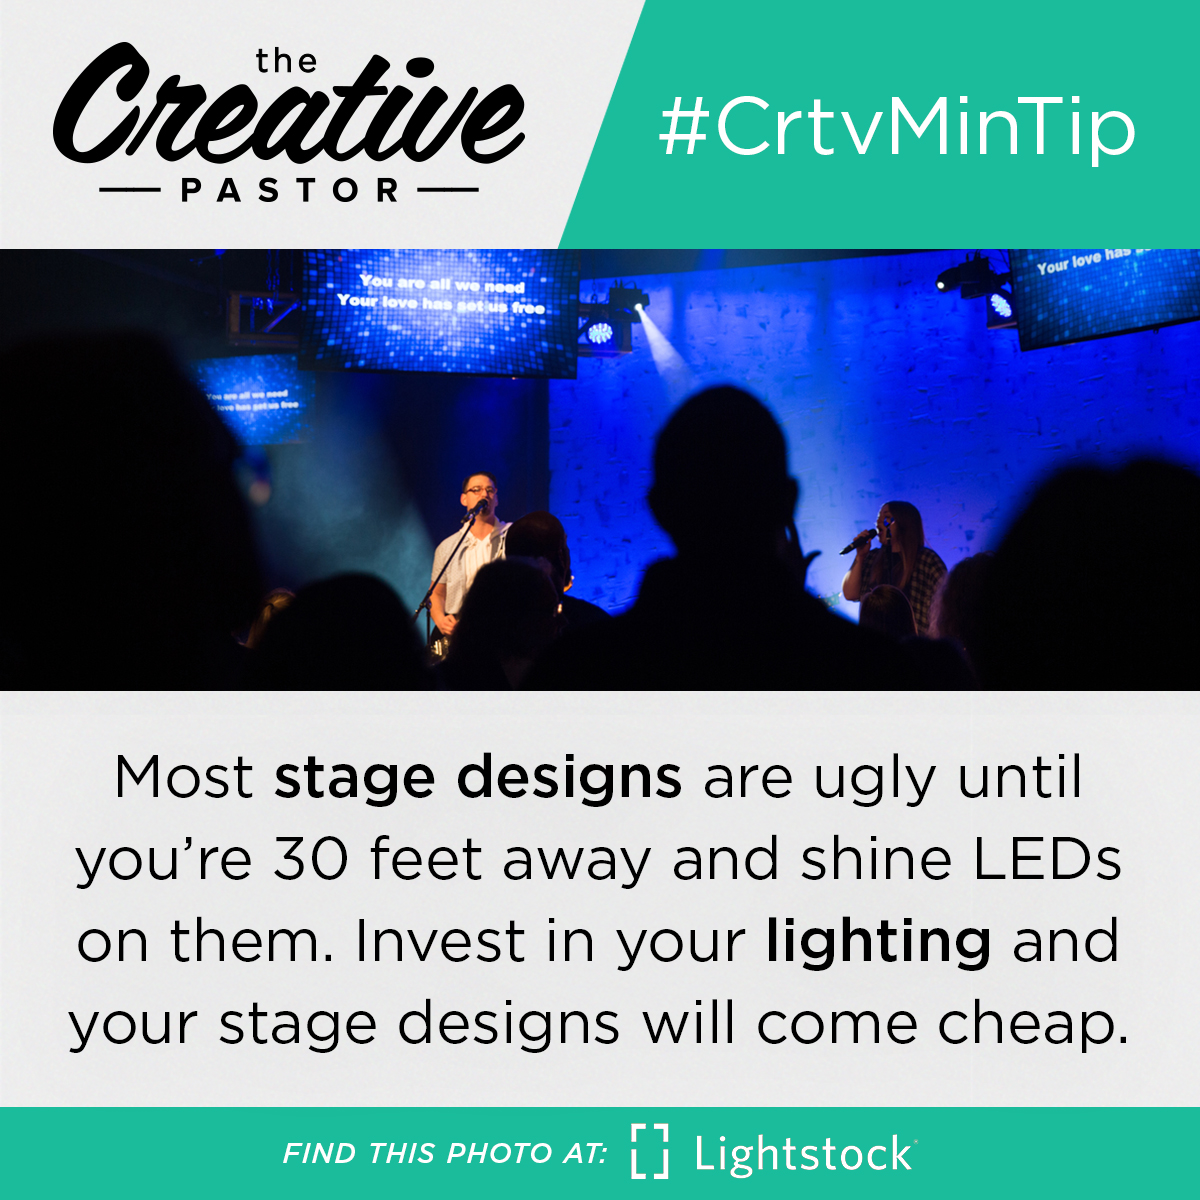 #CrtvMinTip: Most stage designs are ugly until you're 30 feet away and shine LEDs on them. Invest in your lighting and your stage designs will come cheap.